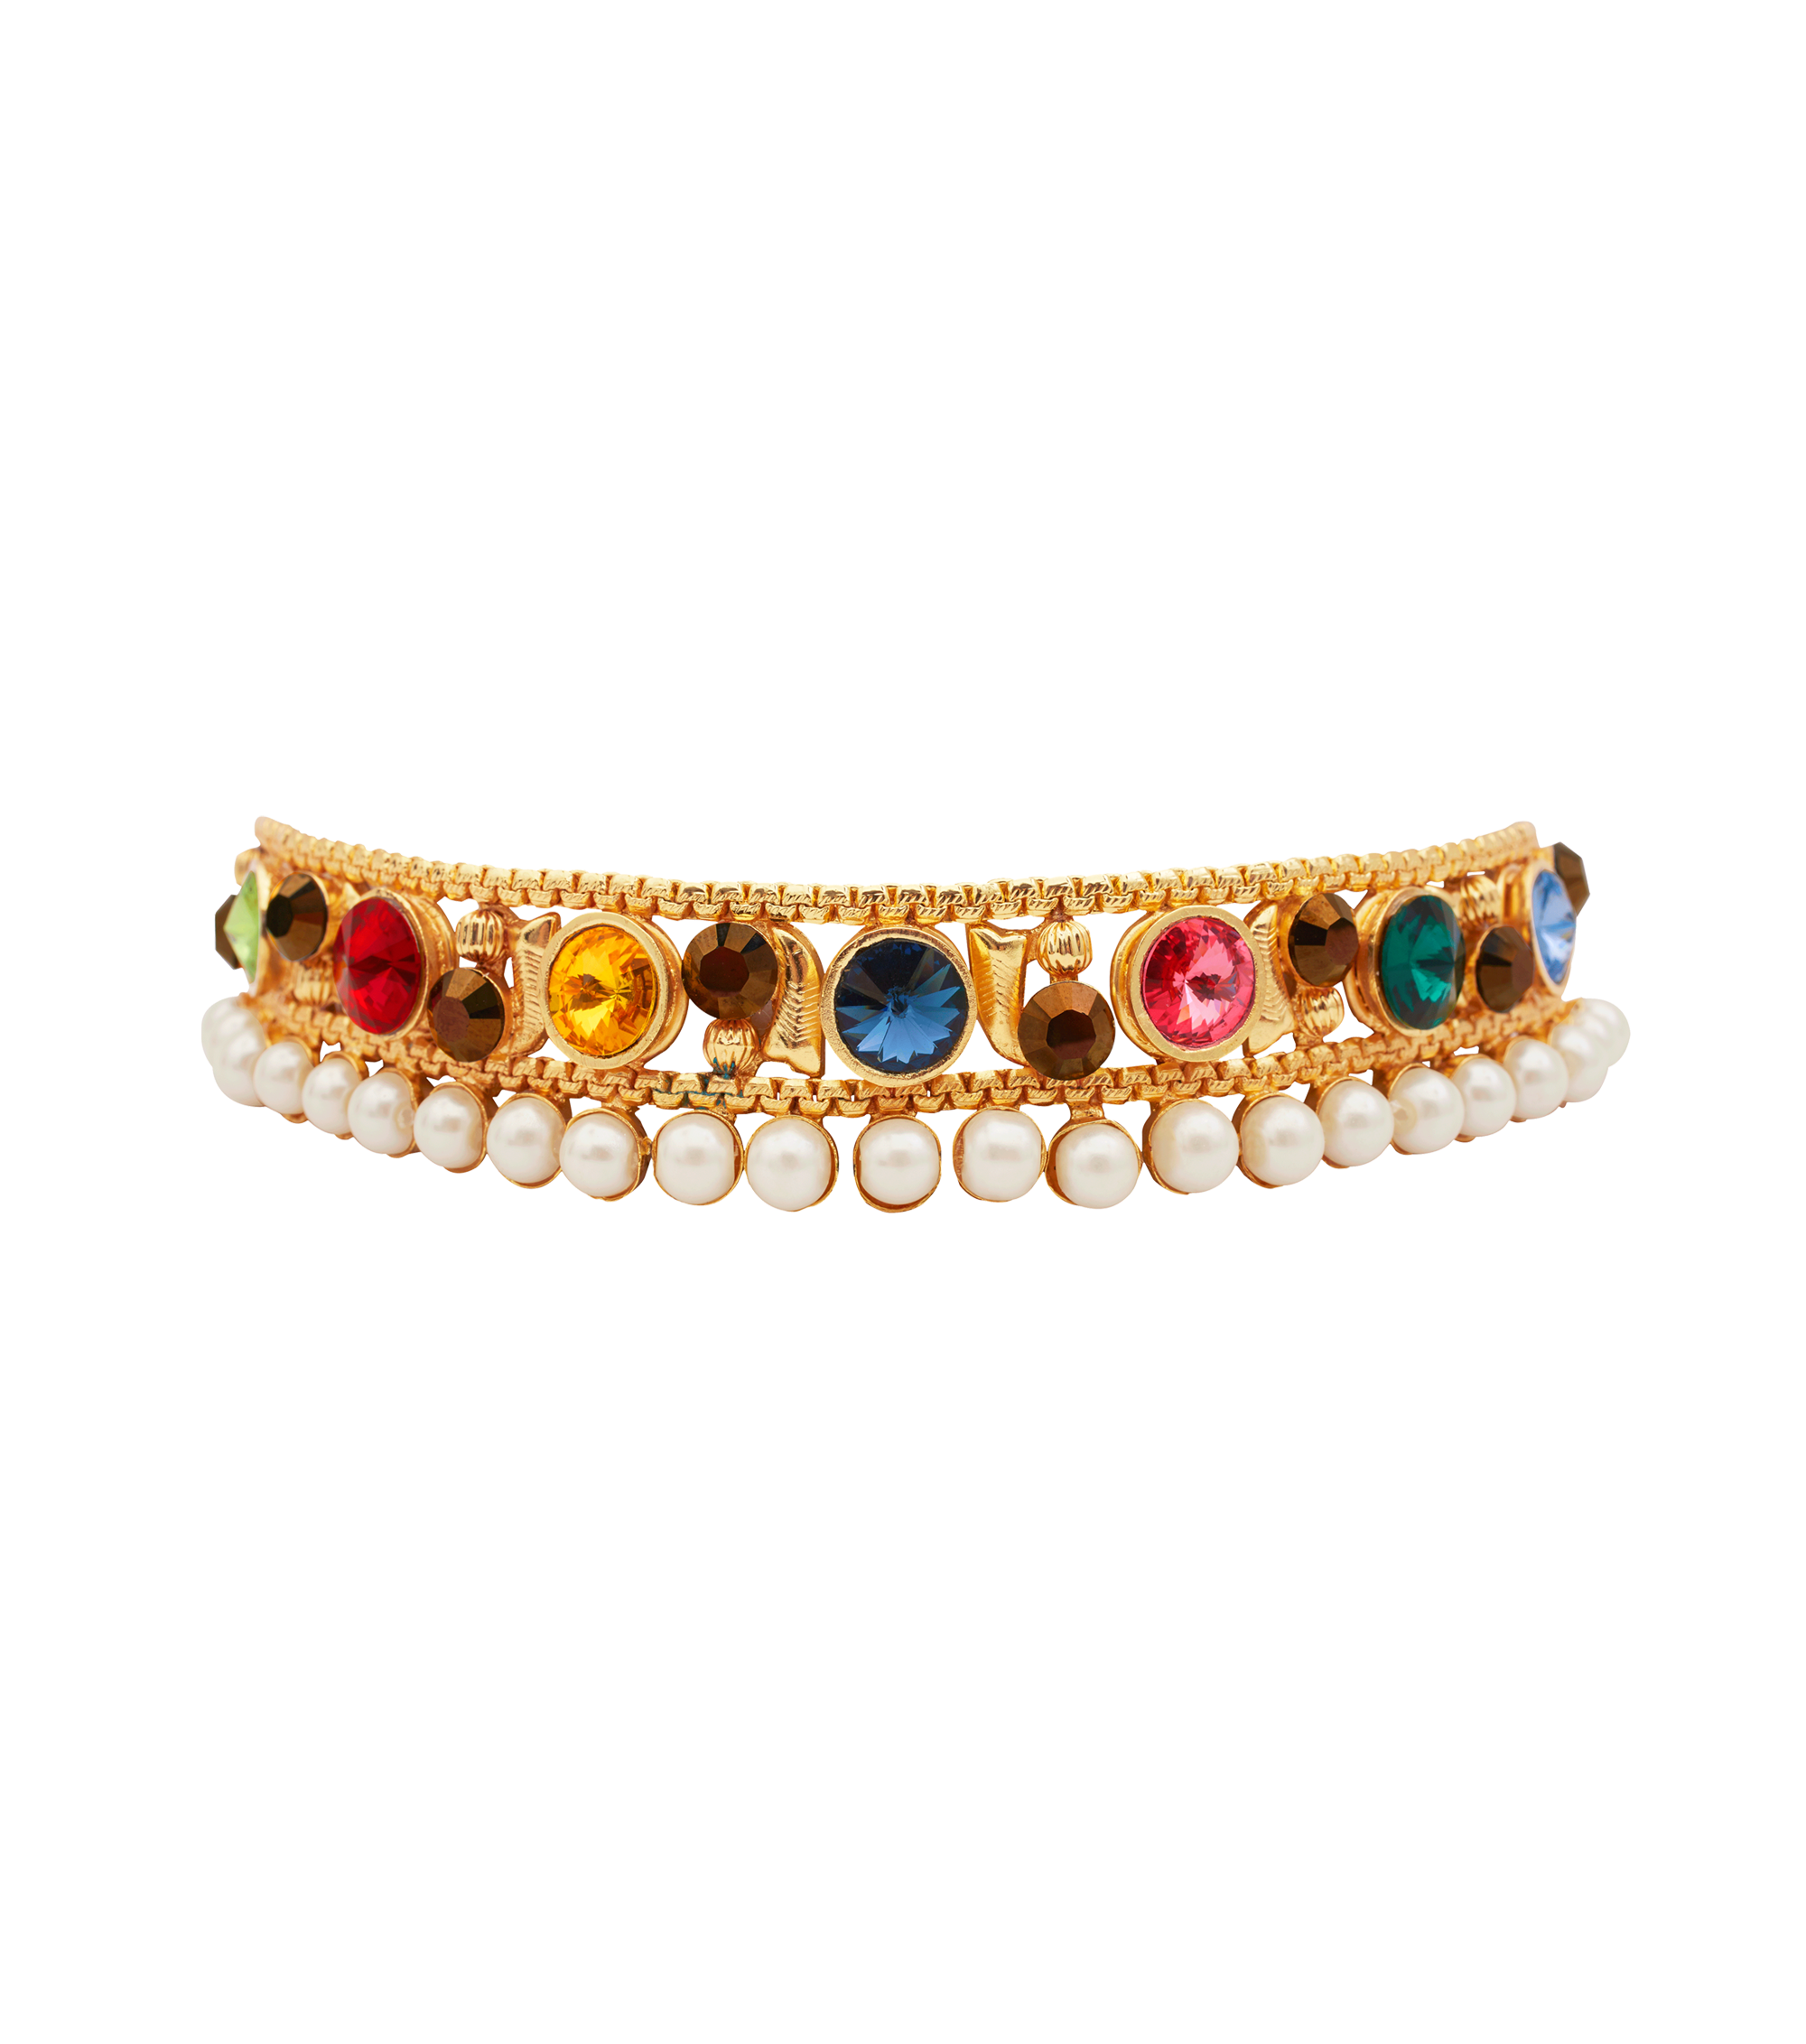 Festive Pearl Choker with multi-color stones